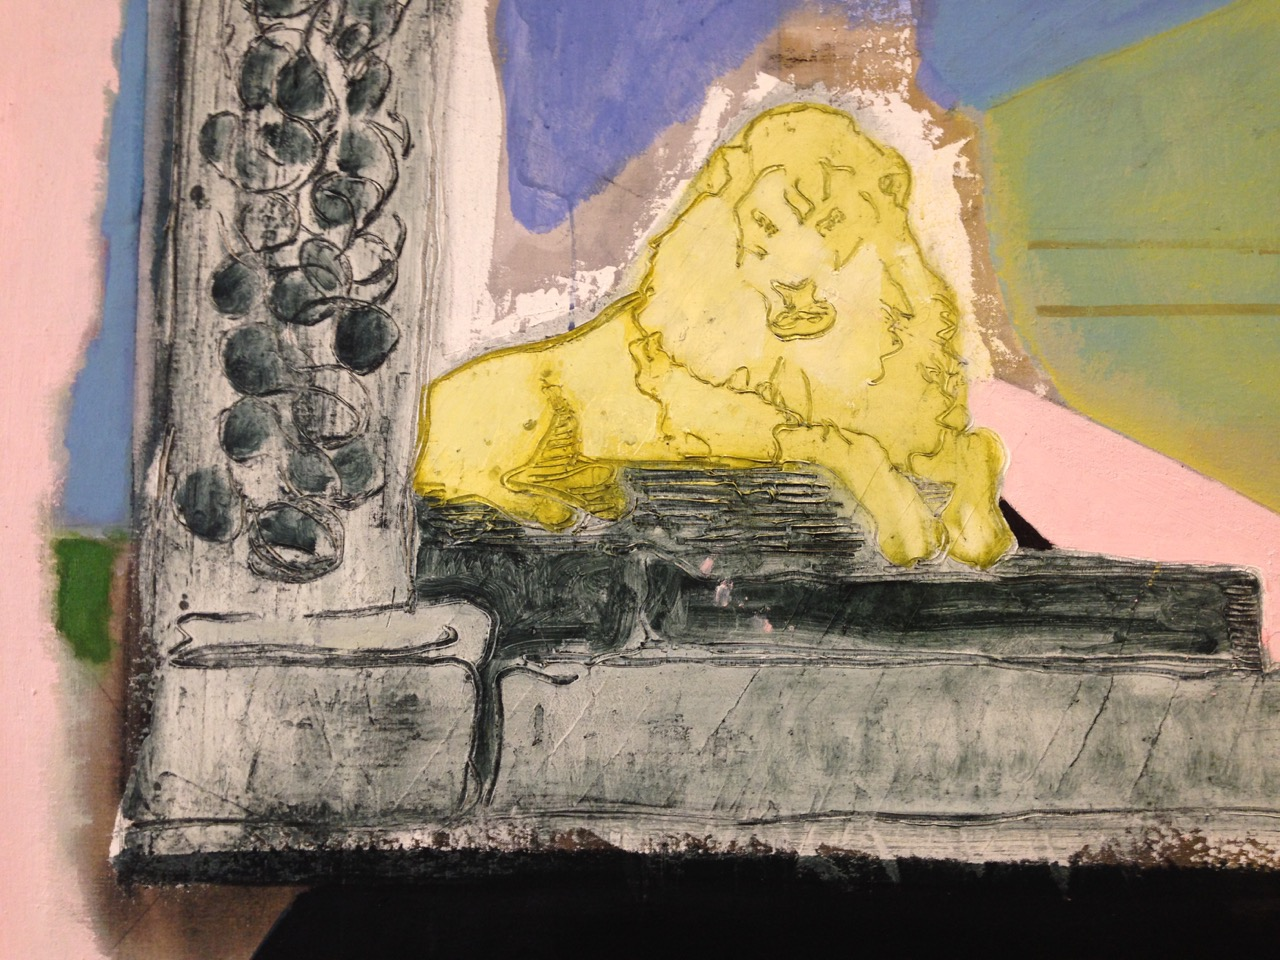 Peter Doig Lion In The Road (Detail) (2015) Oil and distemper on Linen. 200 x 276 cm